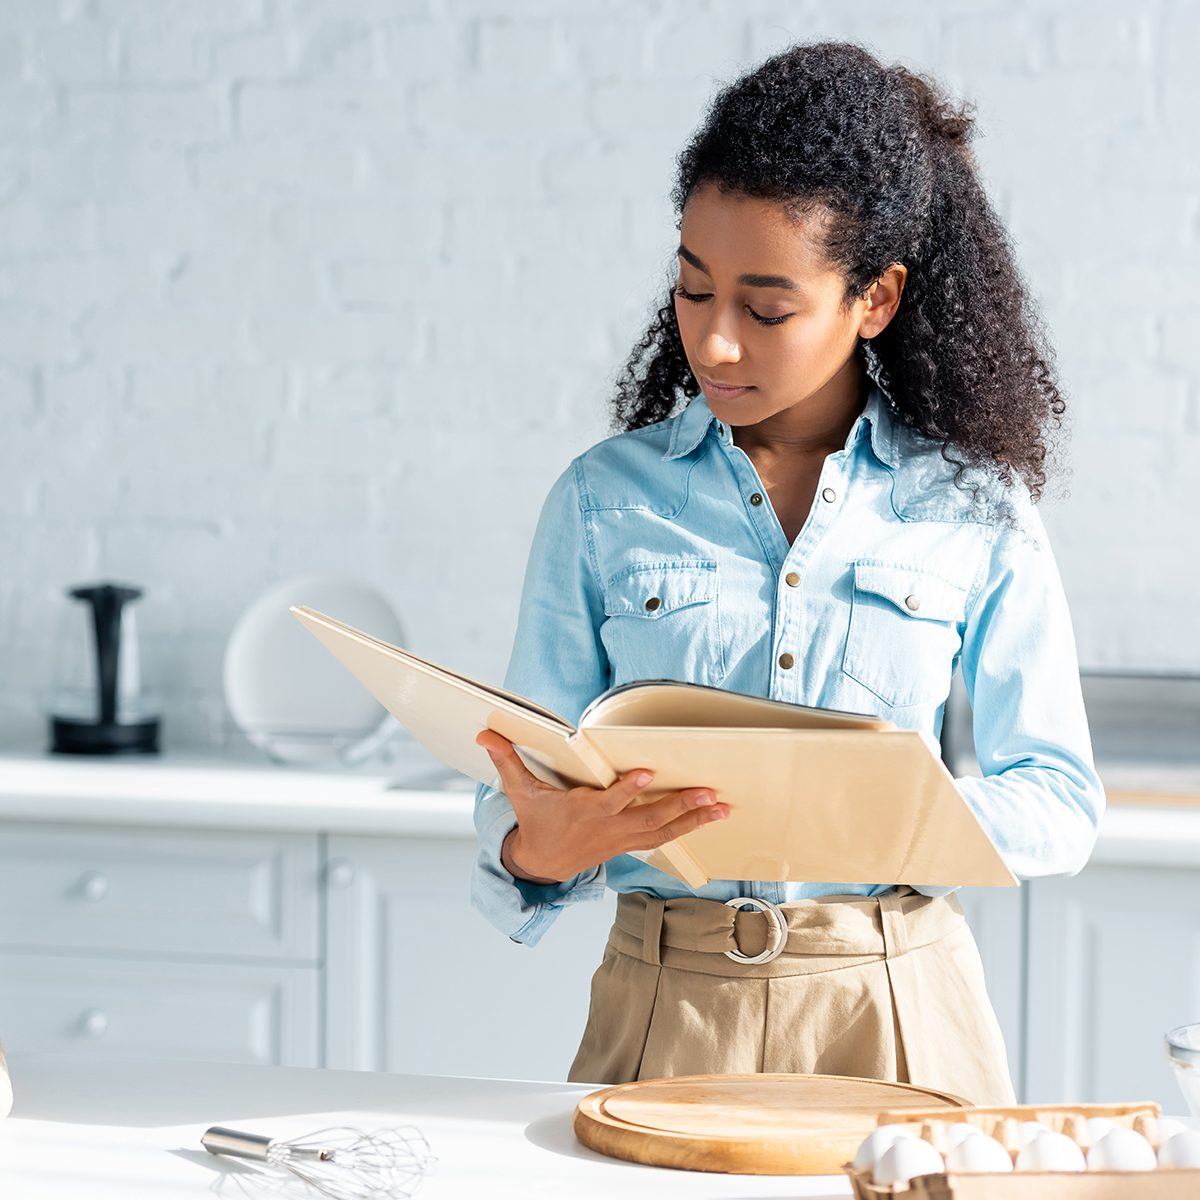 attractive african american woman reading cookbook in kitchen; Shutterstock ID 1229629288; Job (TFH, TOH, RD, BNB, CWM, CM): TOH